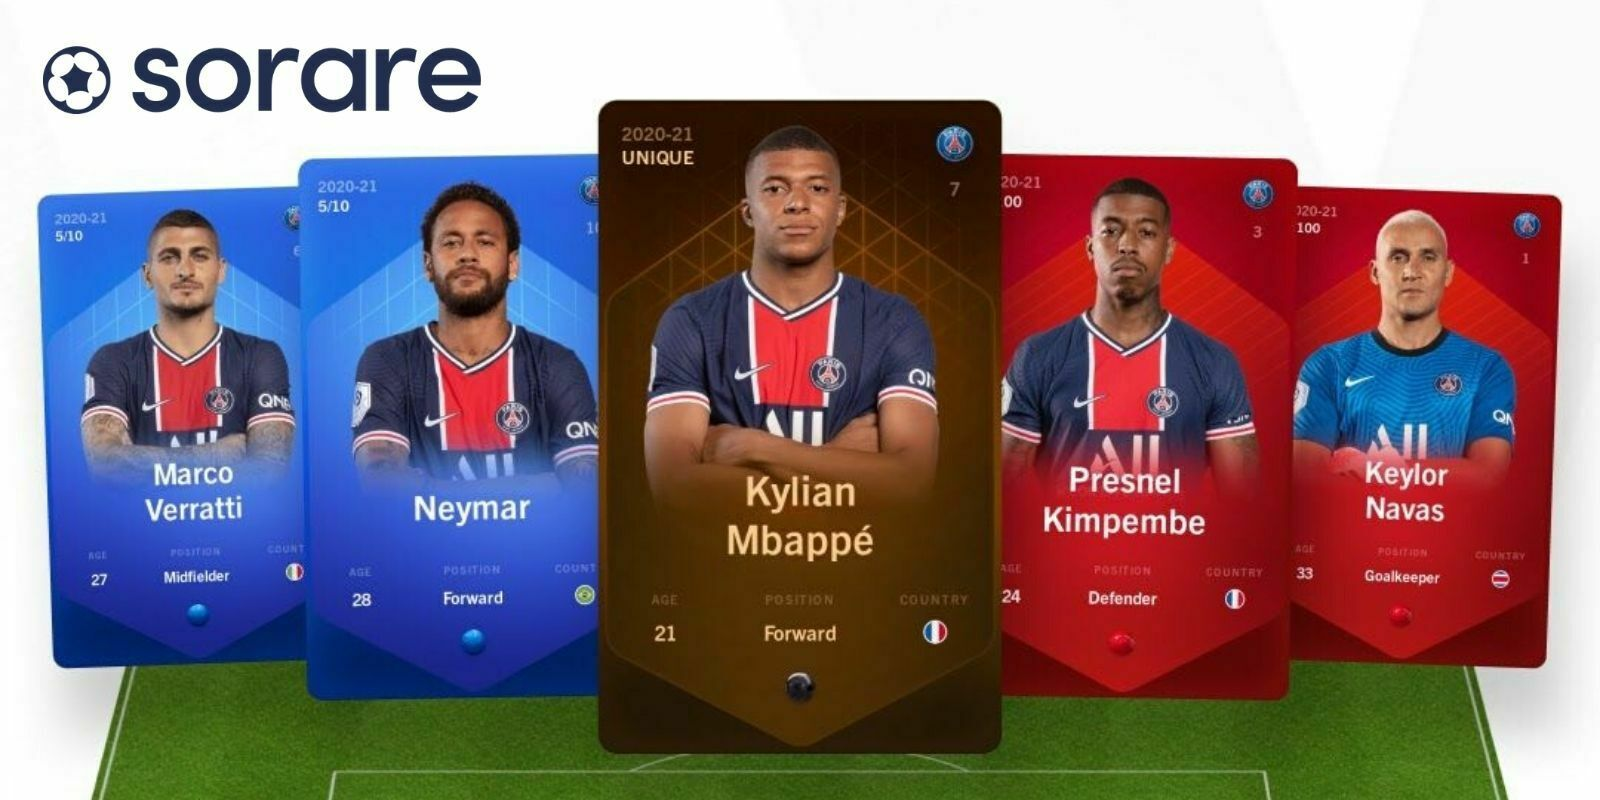 Le Paris Saint-Germain rejoint le jeu blockchain Sorare